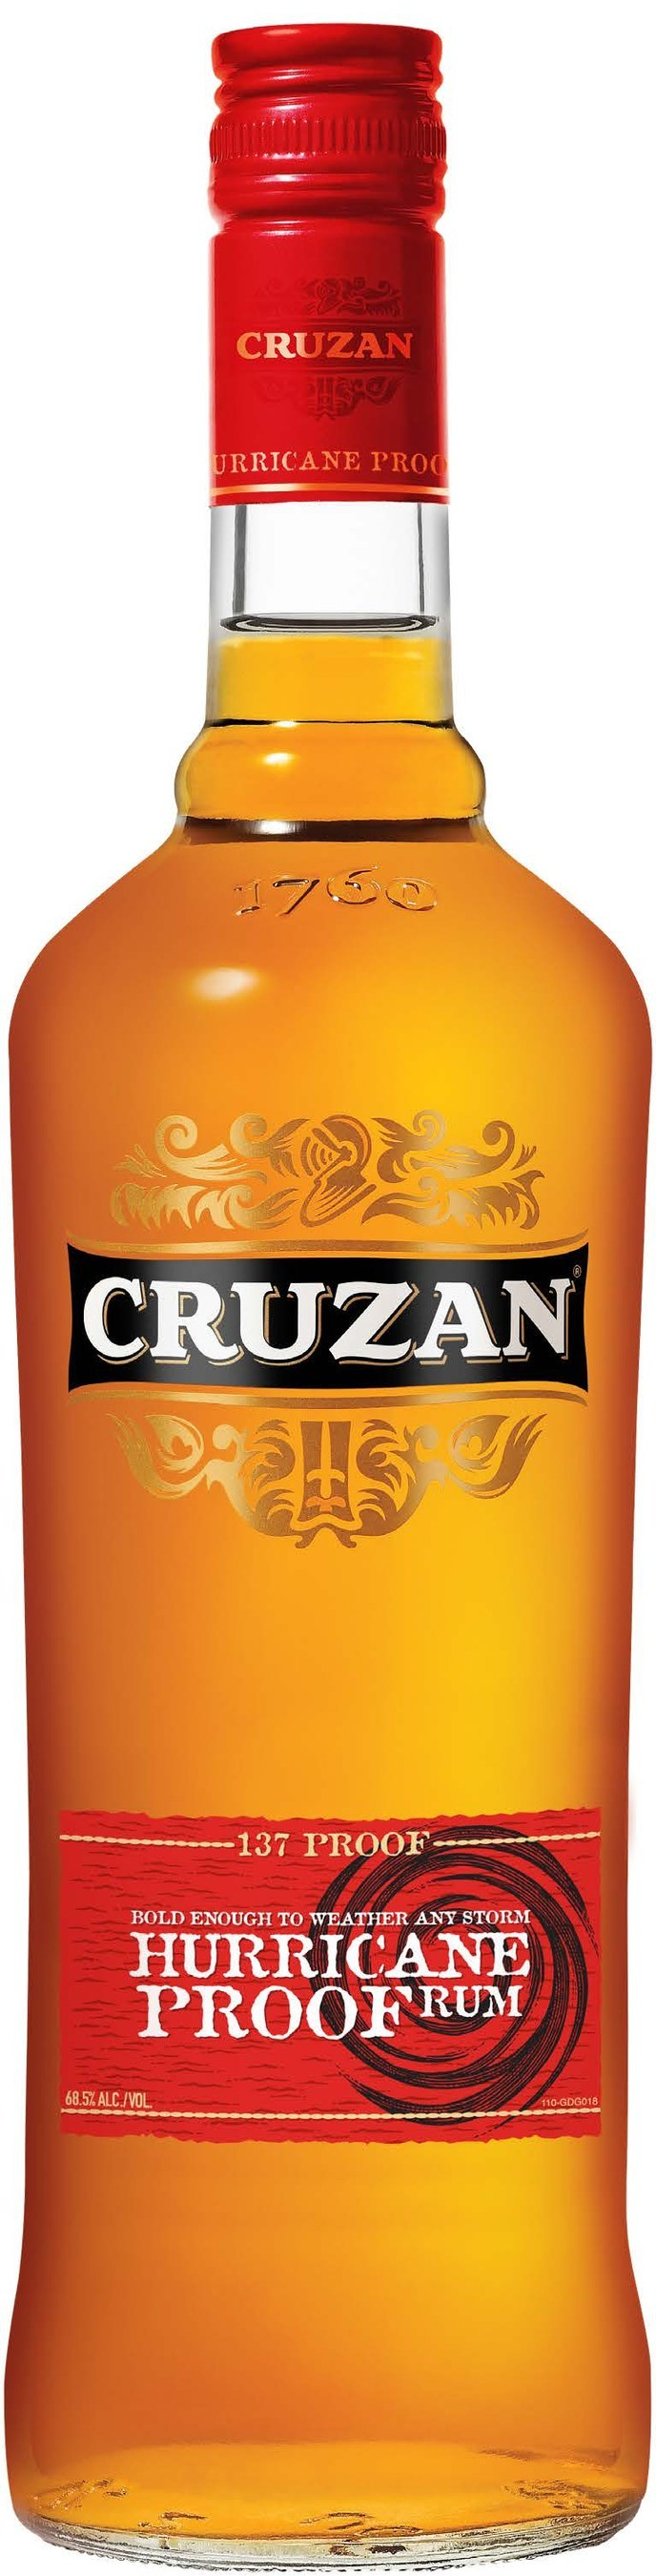 Courtesy of Cruzan Rum